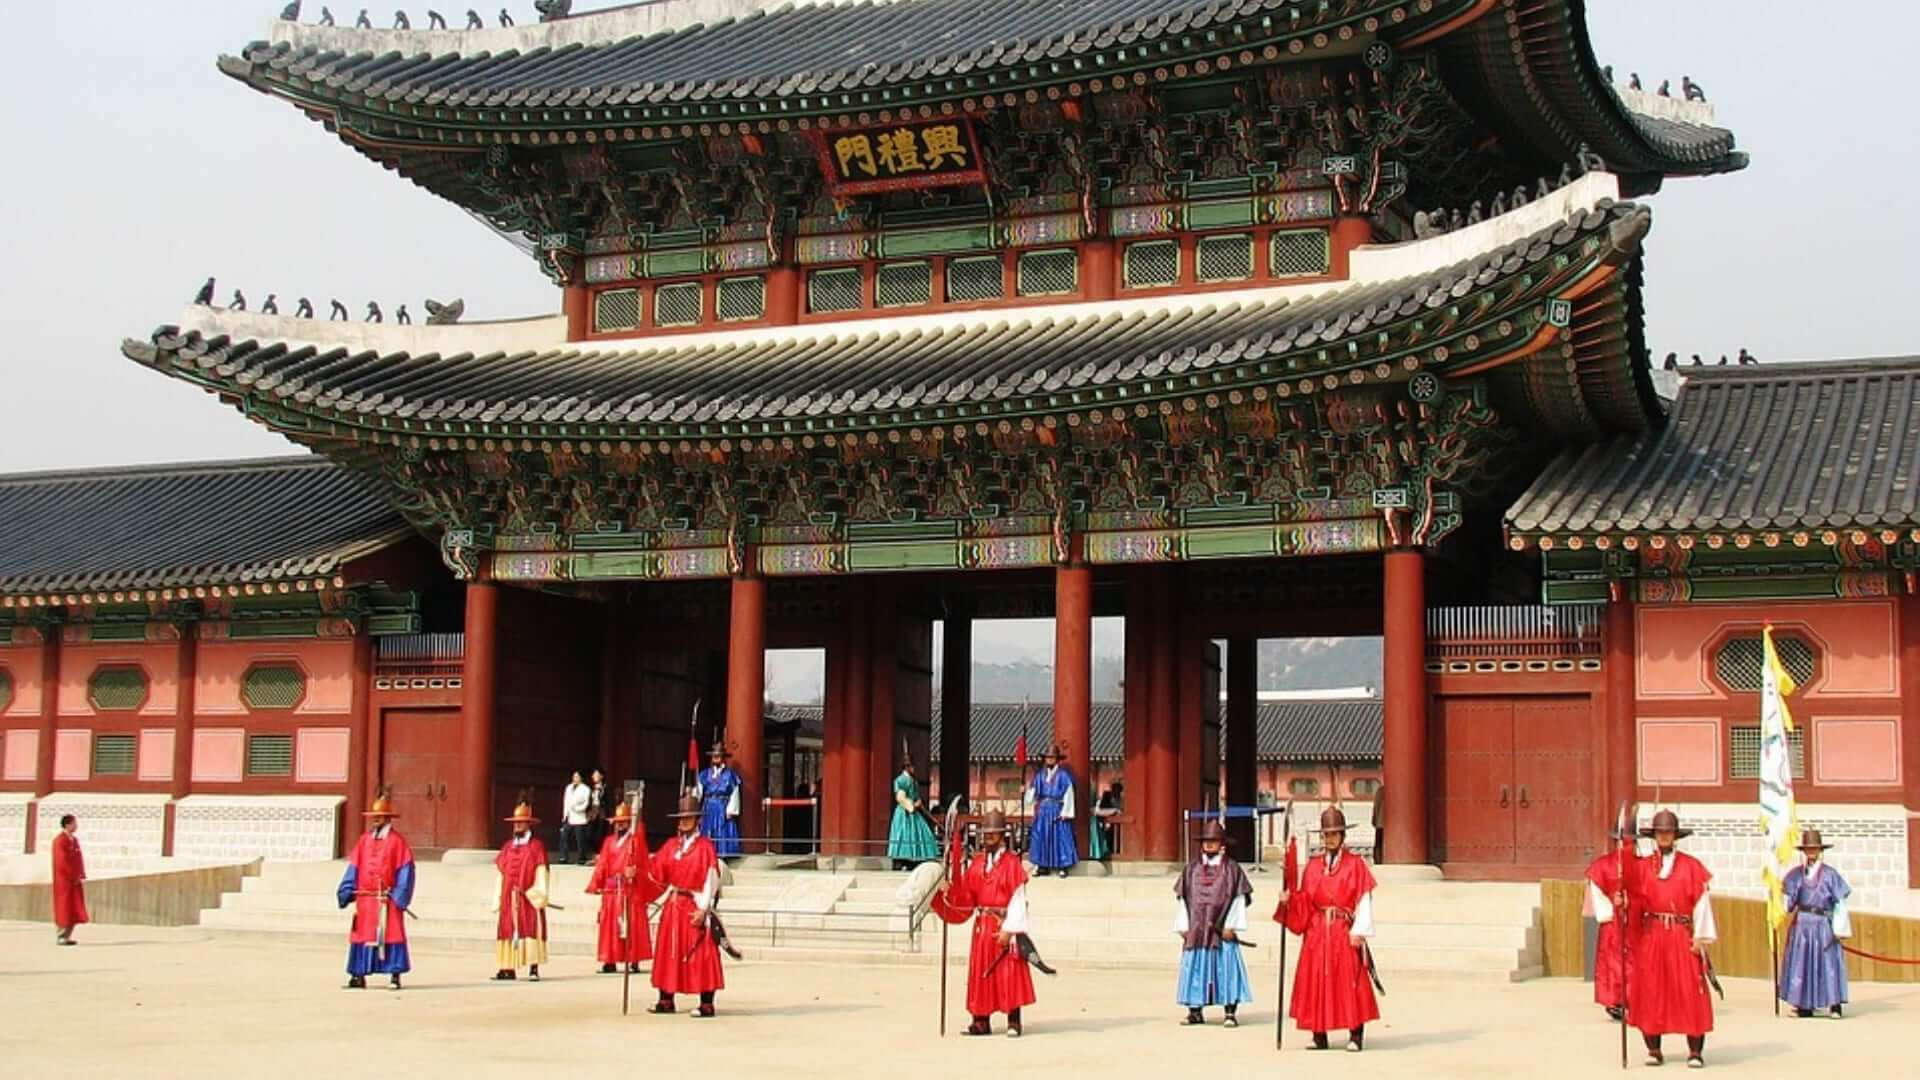 Korean armed guards in traditional outfits are standing in front of a palace in Seoul.